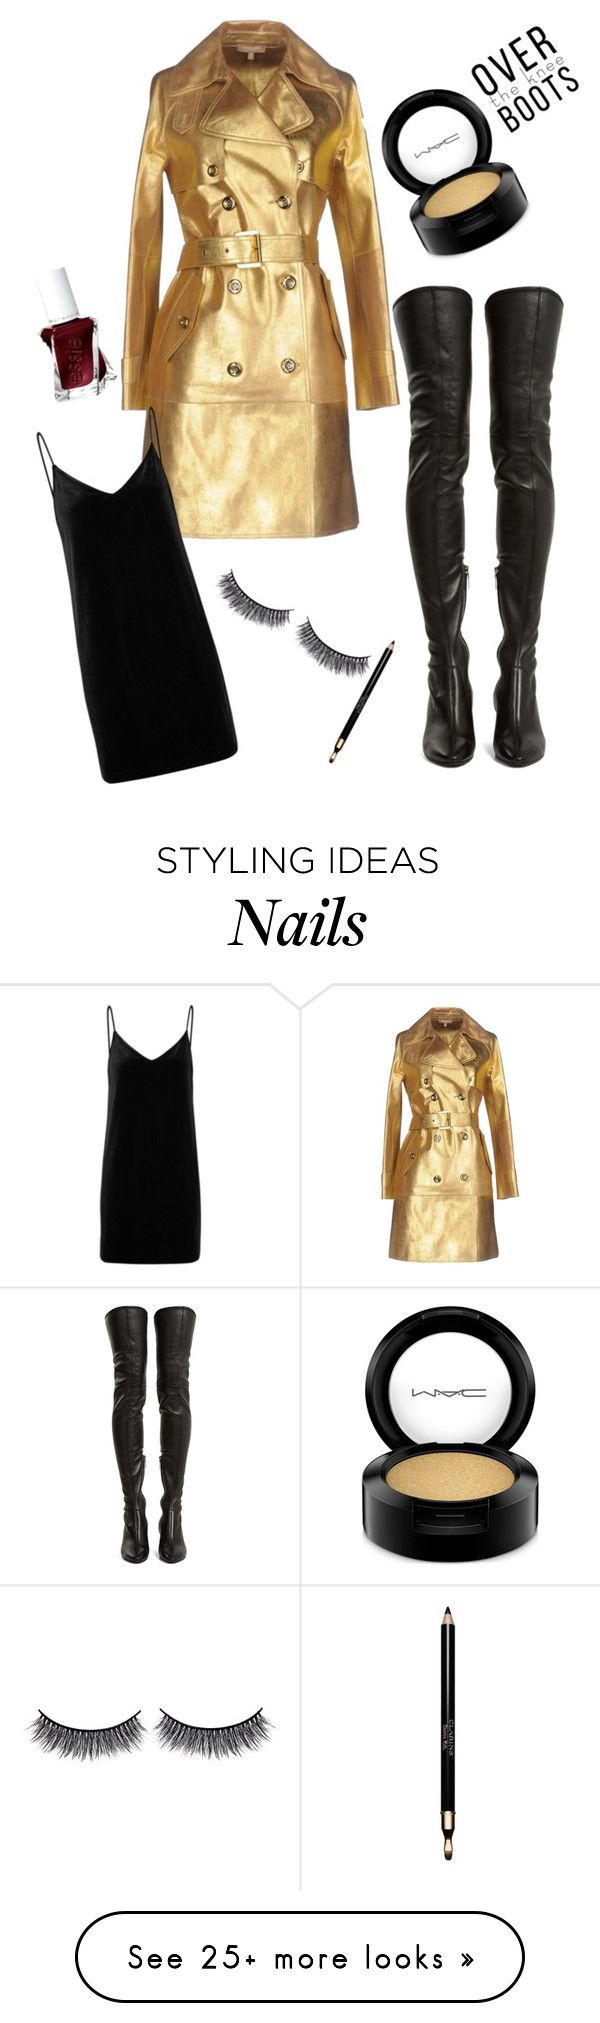 """goldfinger"" by eva-jones-i on Polyvore featuring Michael Kors, Yves Saint Laurent, rag & bone/JEAN, MAC Cosmetics, Clarins, Battington and Essie"